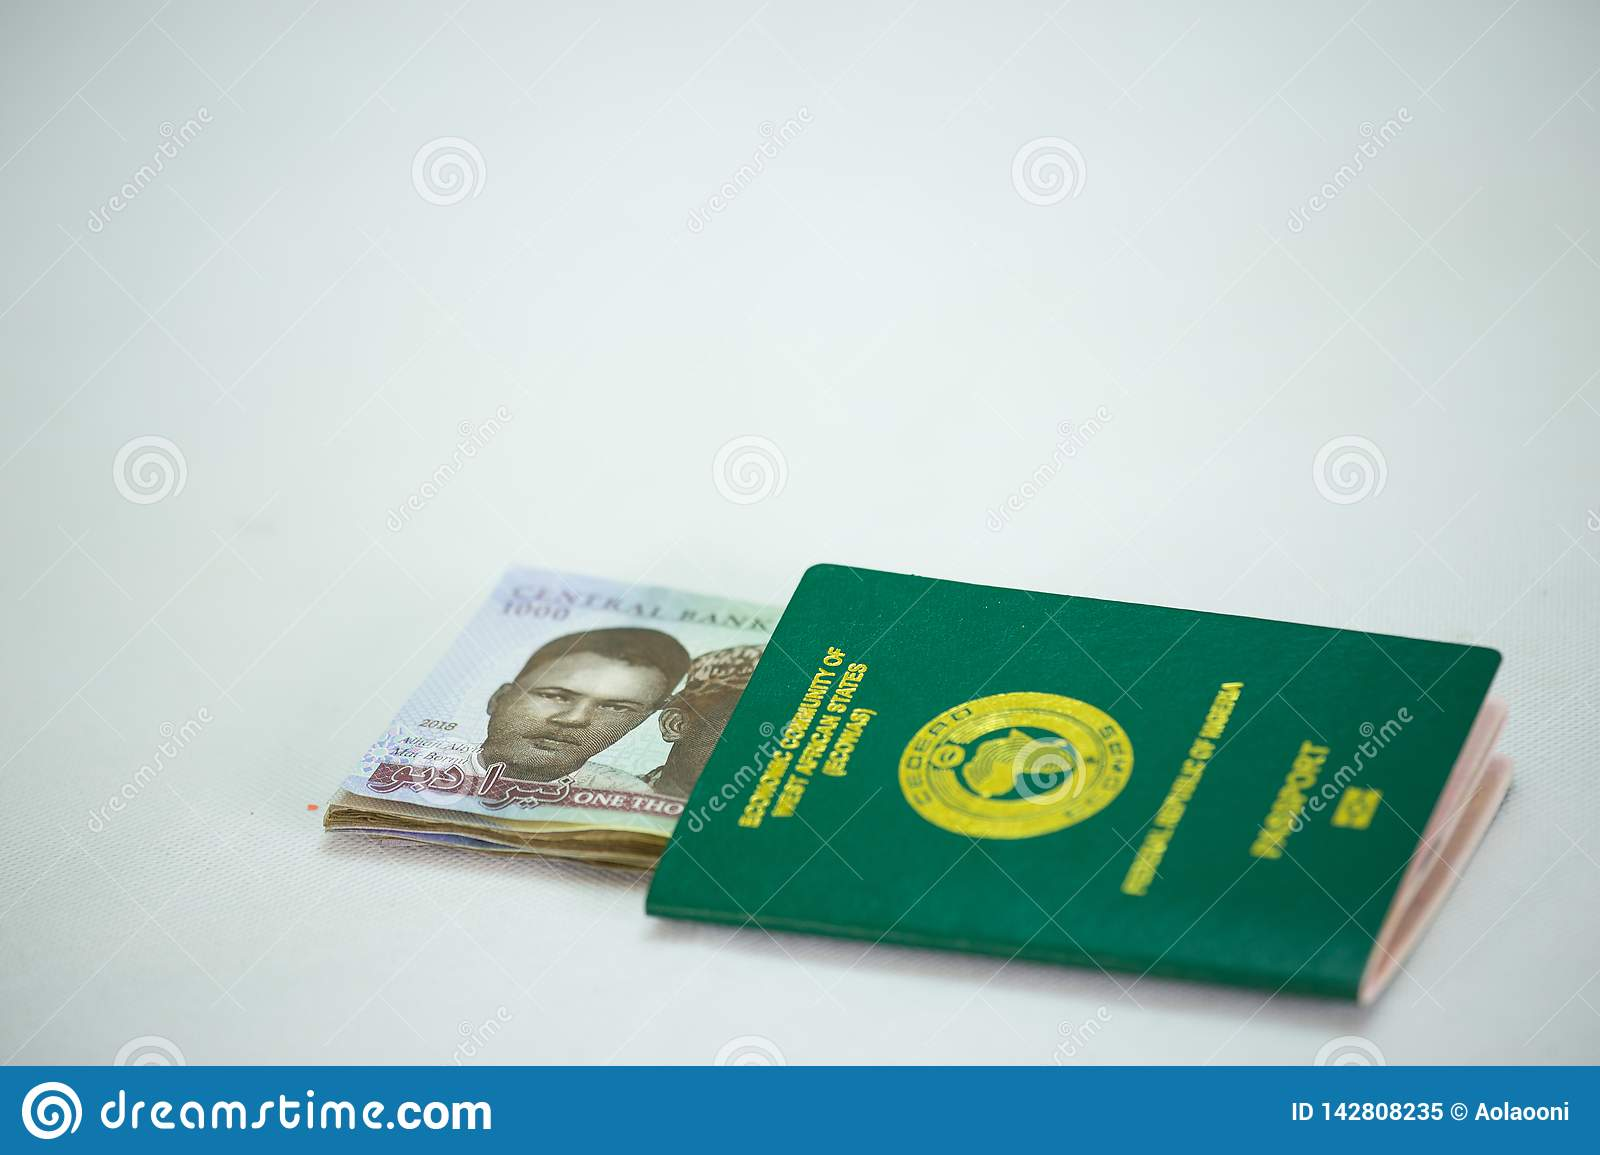 Ecowas  or International Passport with wad of N1000 NAIRA NOTES